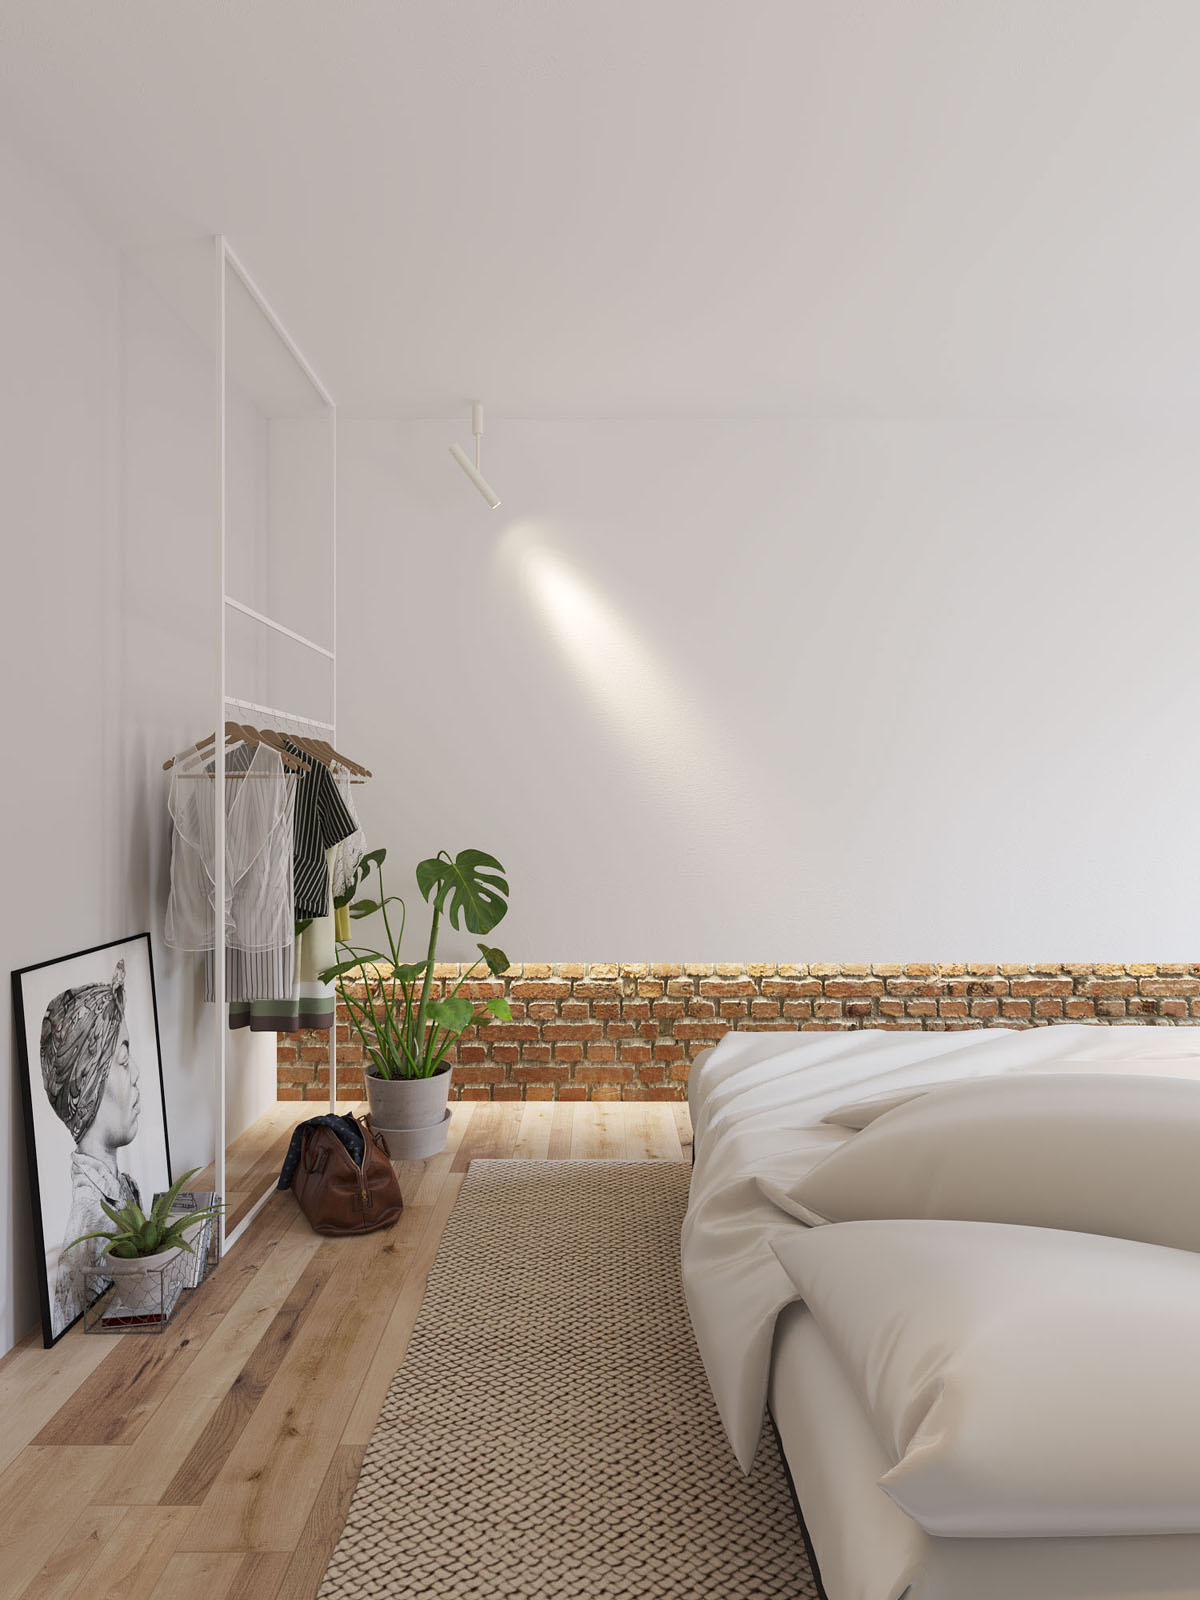 White Walls And Exposed Brick Go Minimalist In This Couple S Retreat